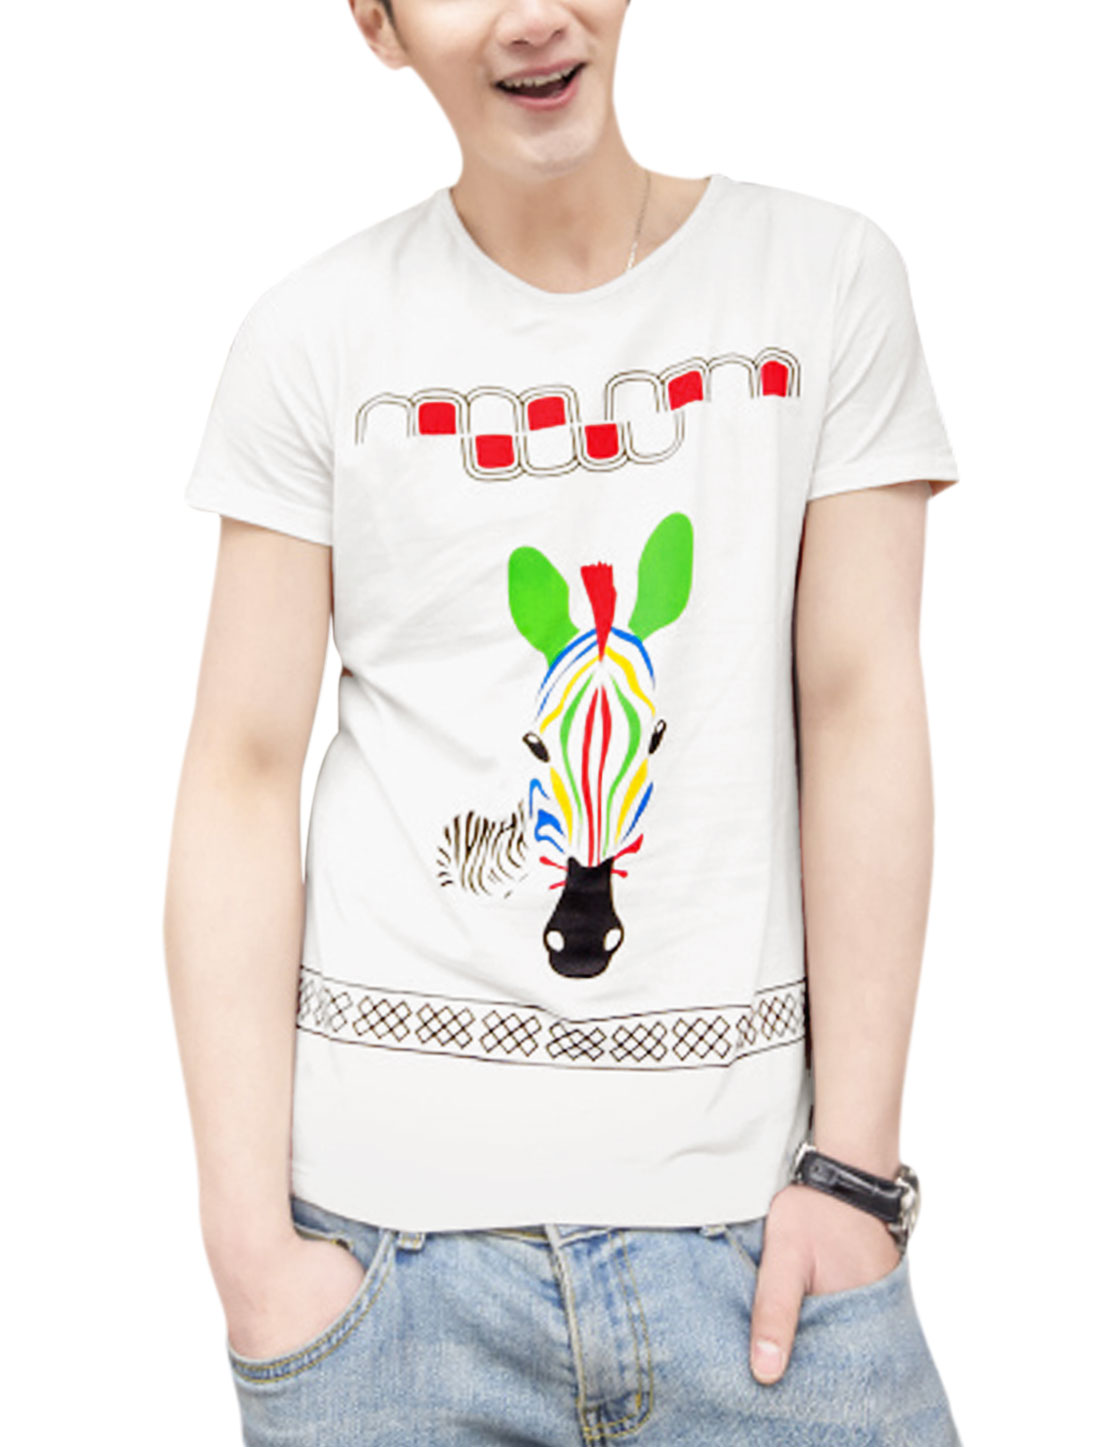 Men Cartoon Zebra Pattern Short Sleeve Slipover Soft Tee White M